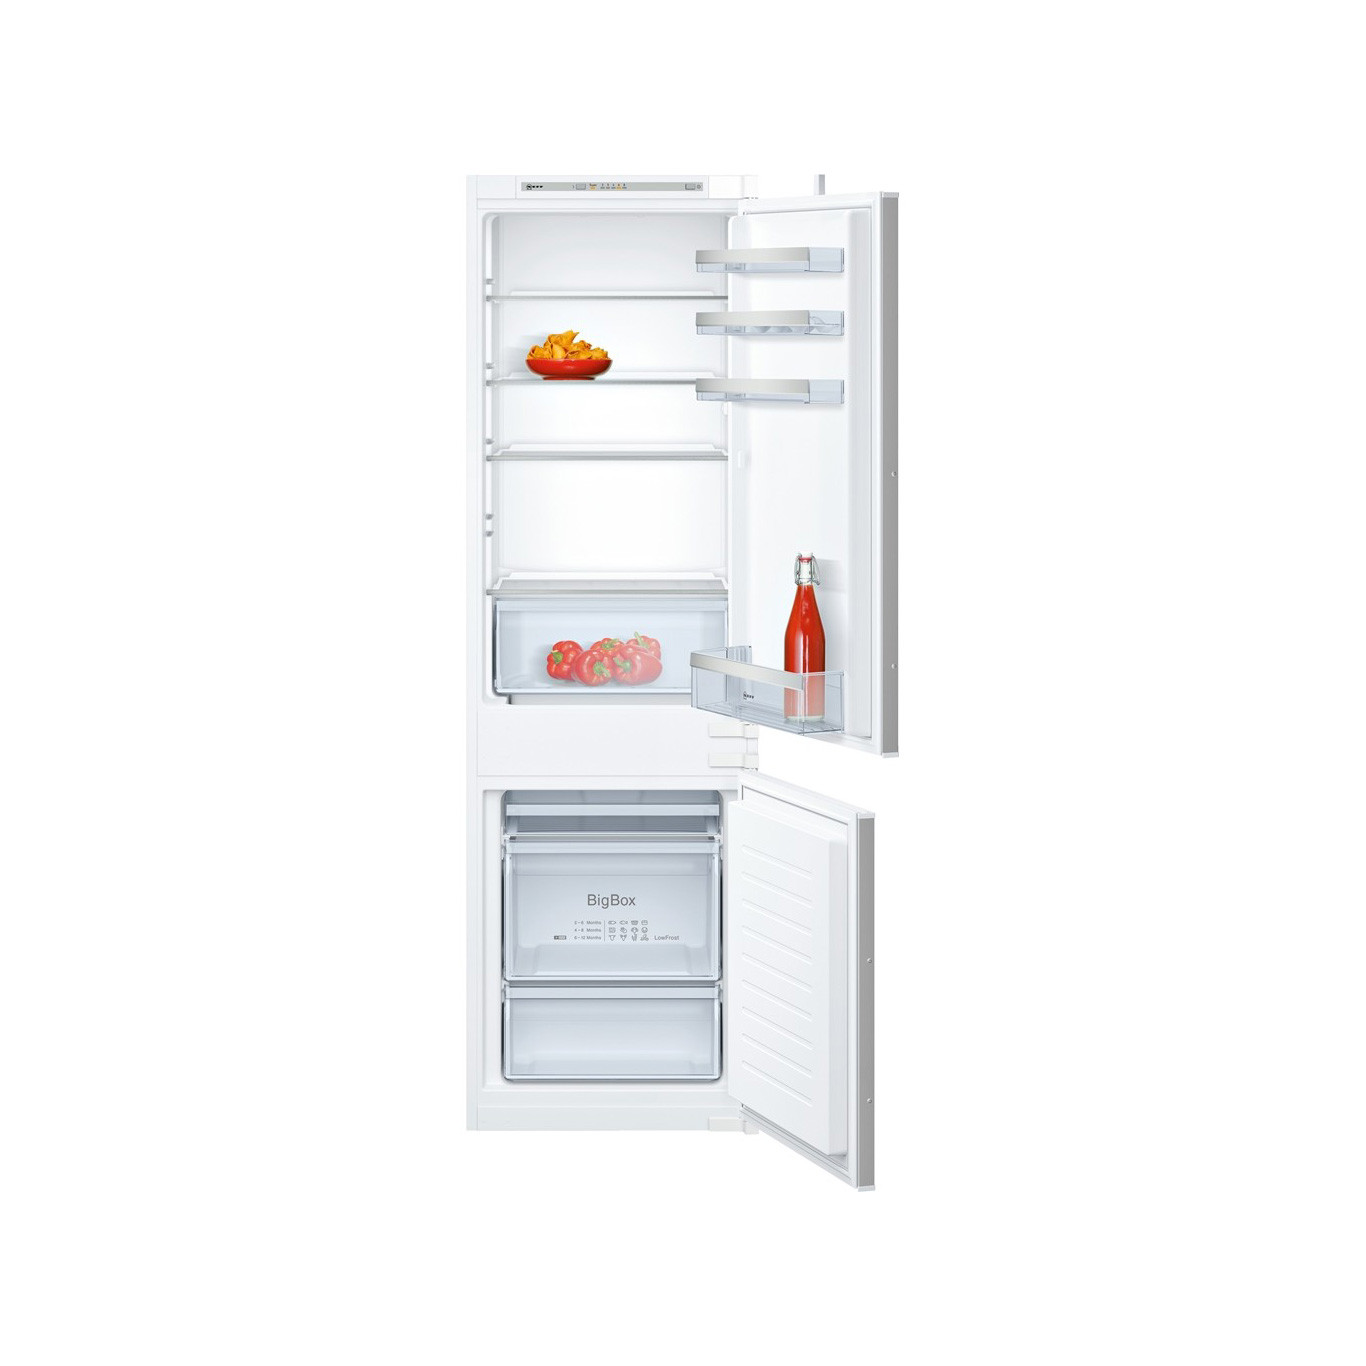 Neff N50 Built-In Fully Integrated 60/40 Fridge Freezer KI5862SF0G